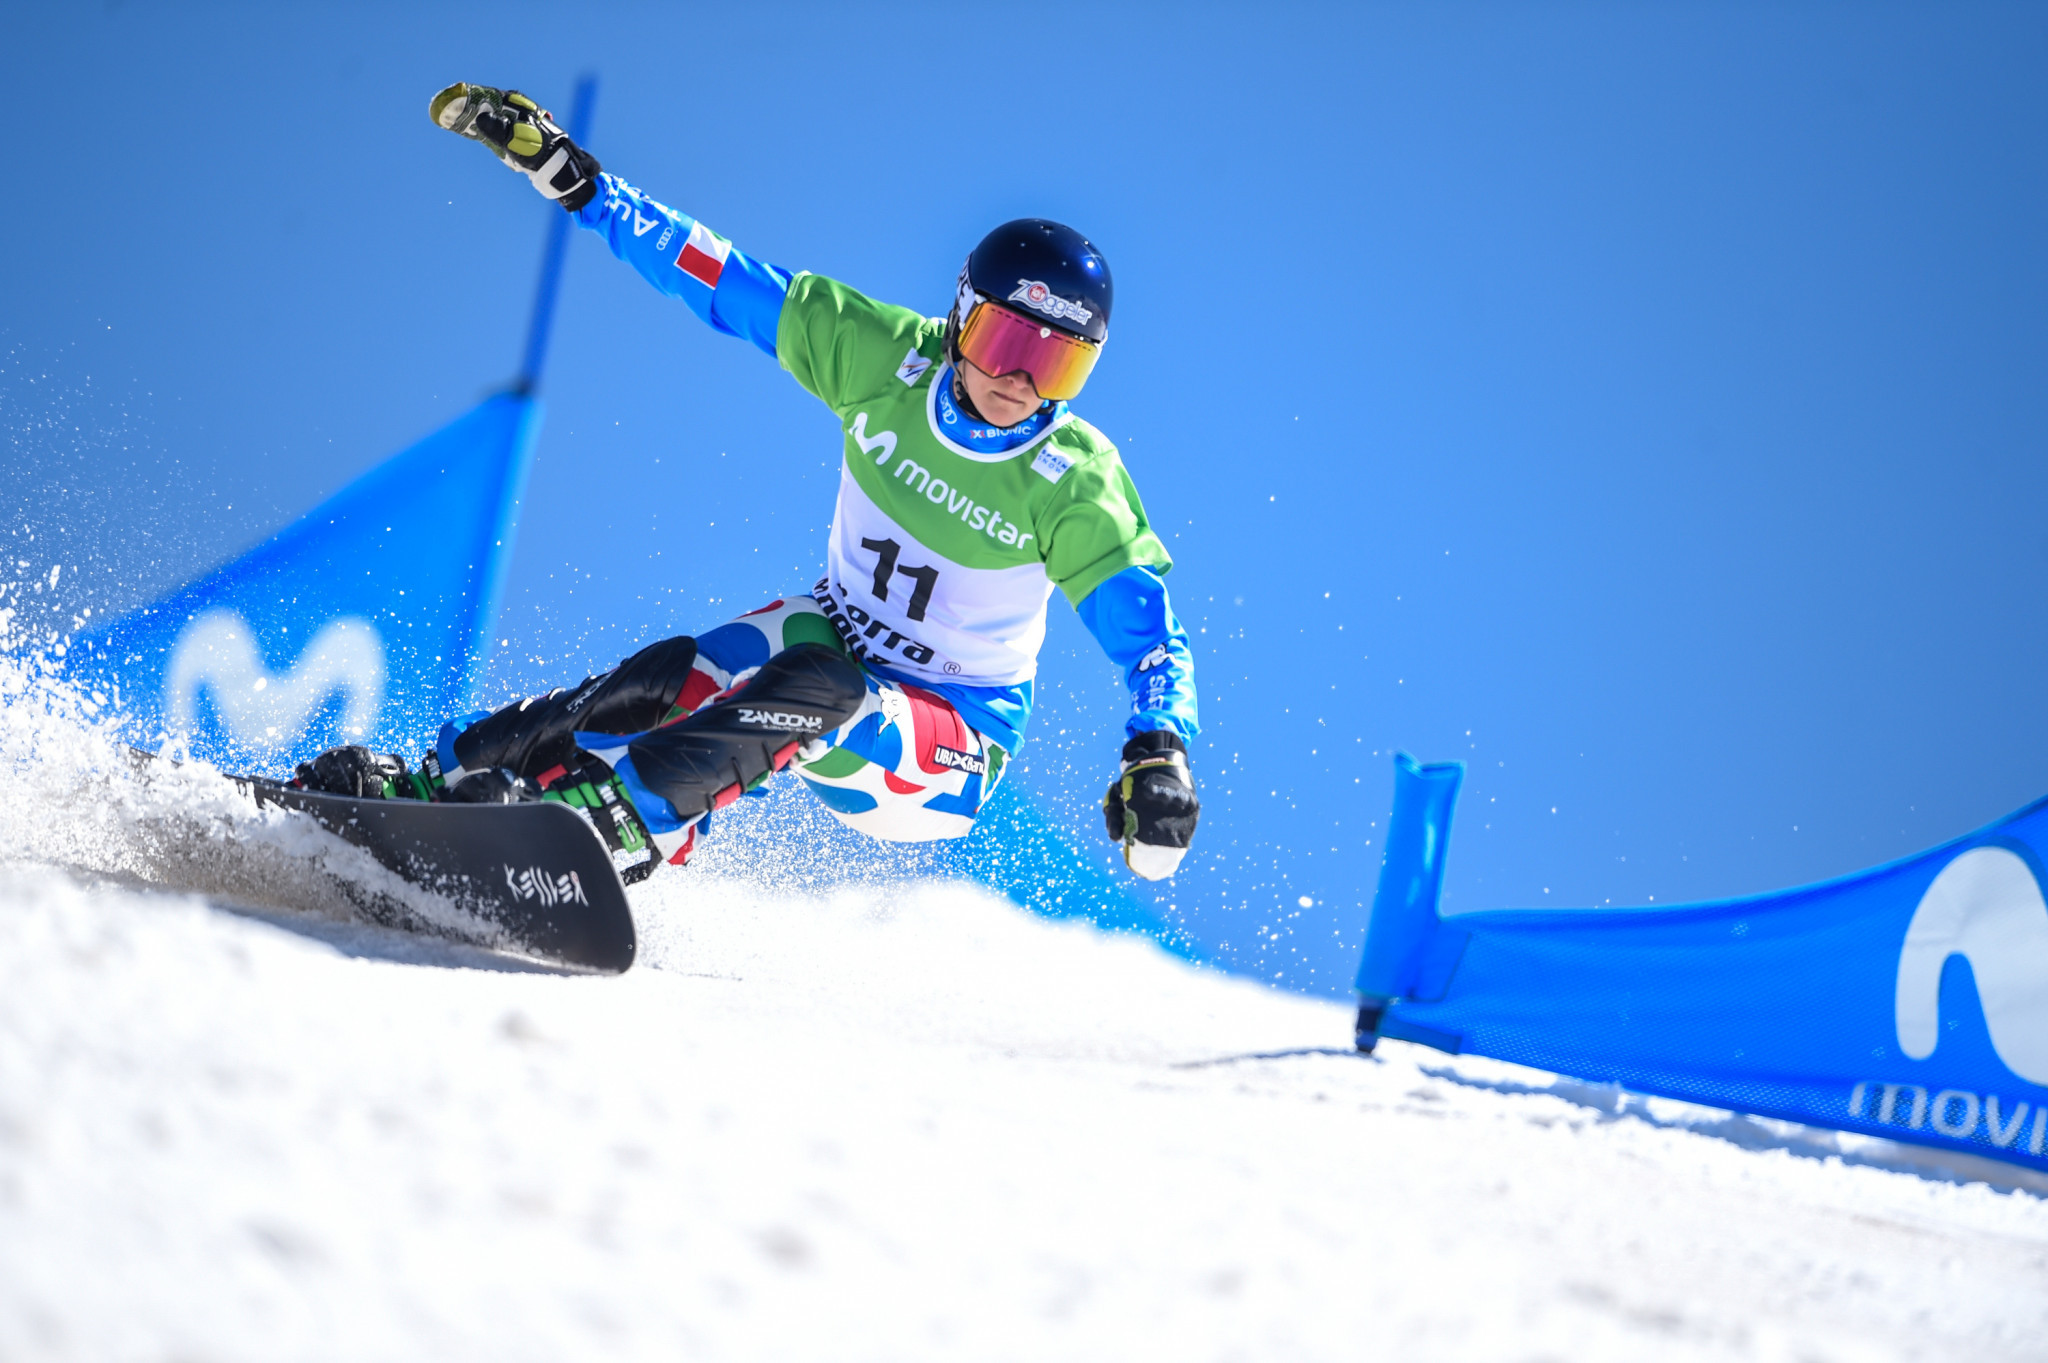 Home snowboarder Ochner holds off Ledecká to win first World Cup gold at Carezza